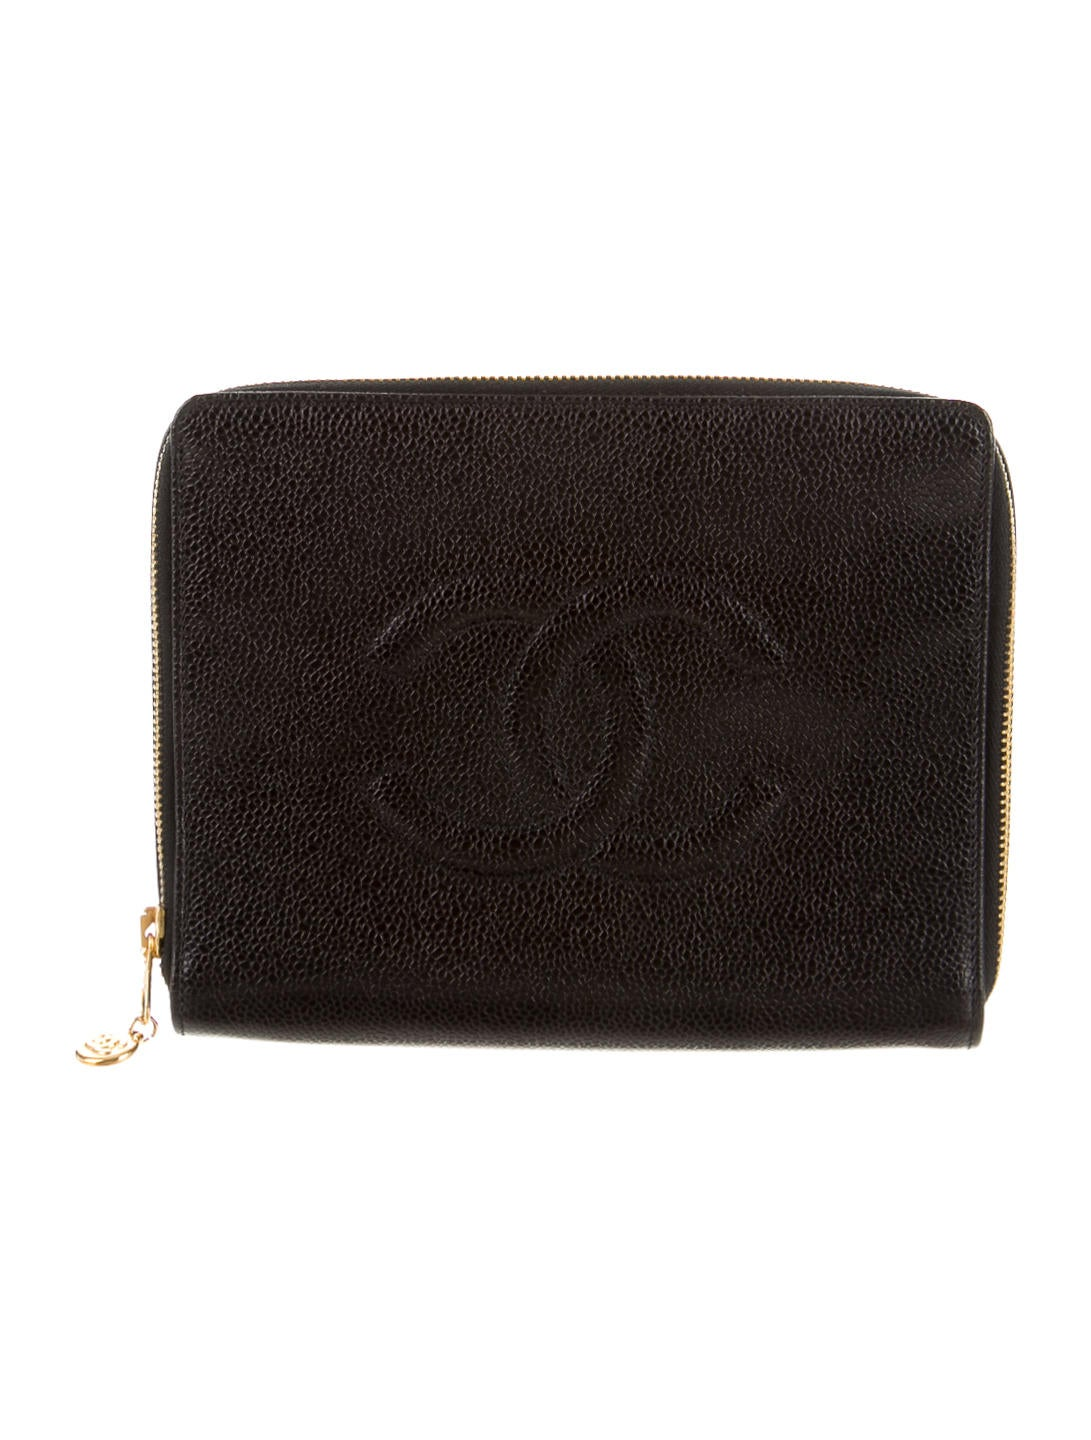 Chanel Vintage Jewelry Travel Case - Accessories ...